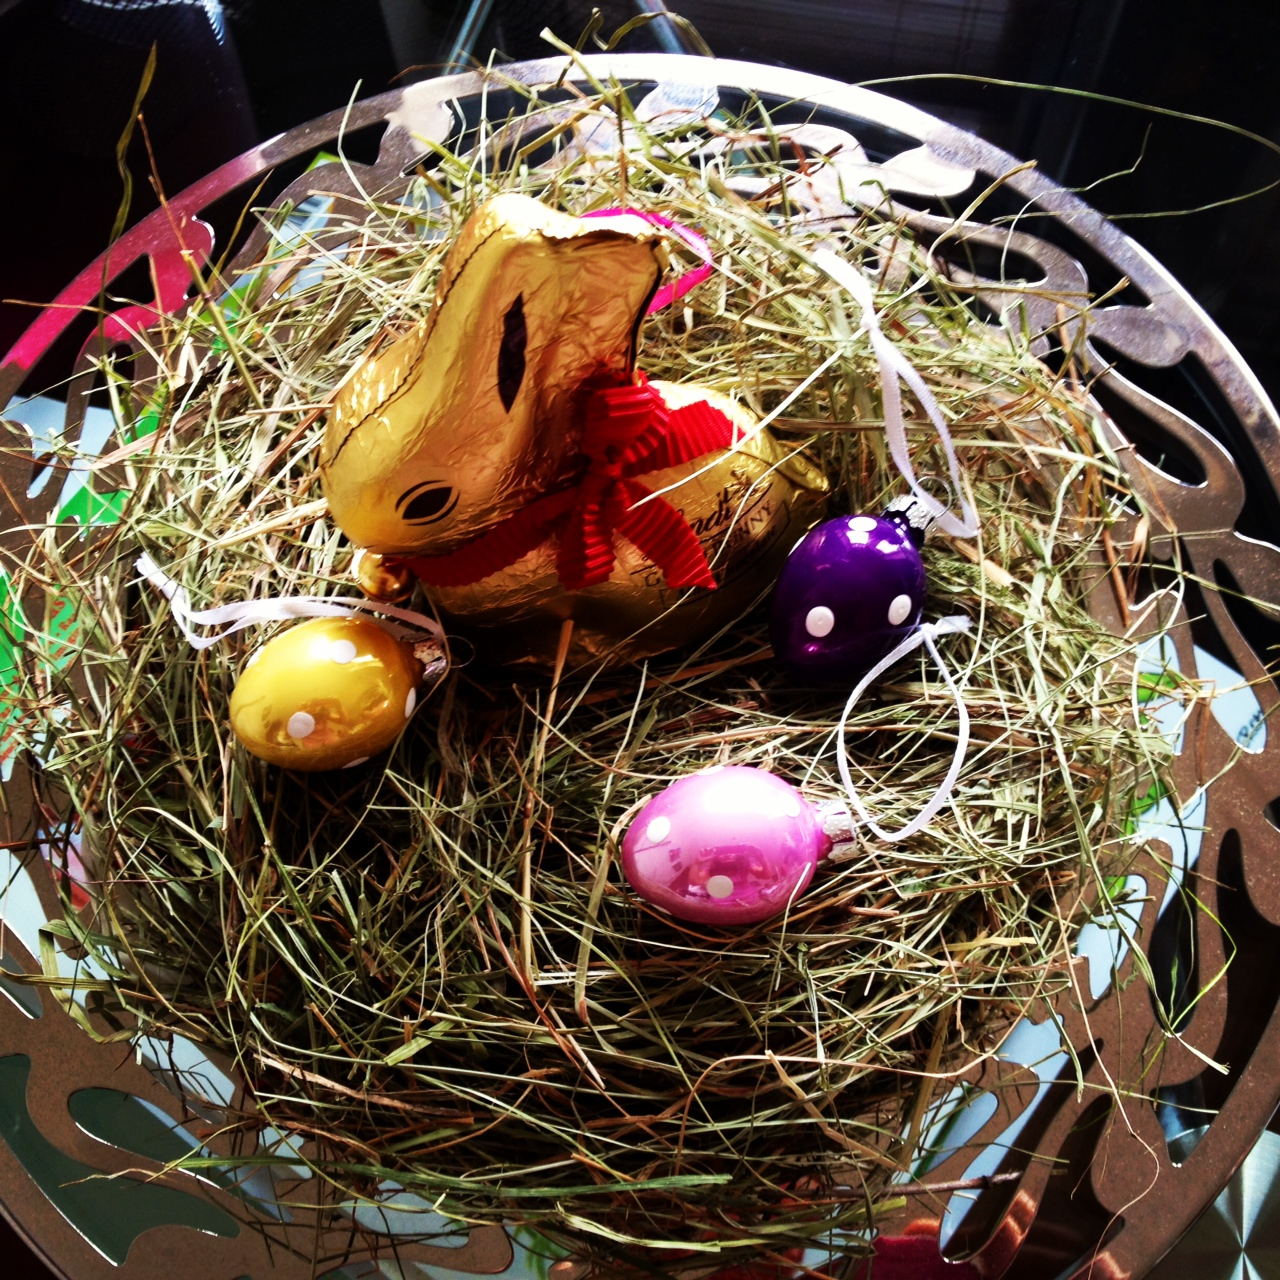 Lindt bunny nestled into easter grass on an Alessi plate